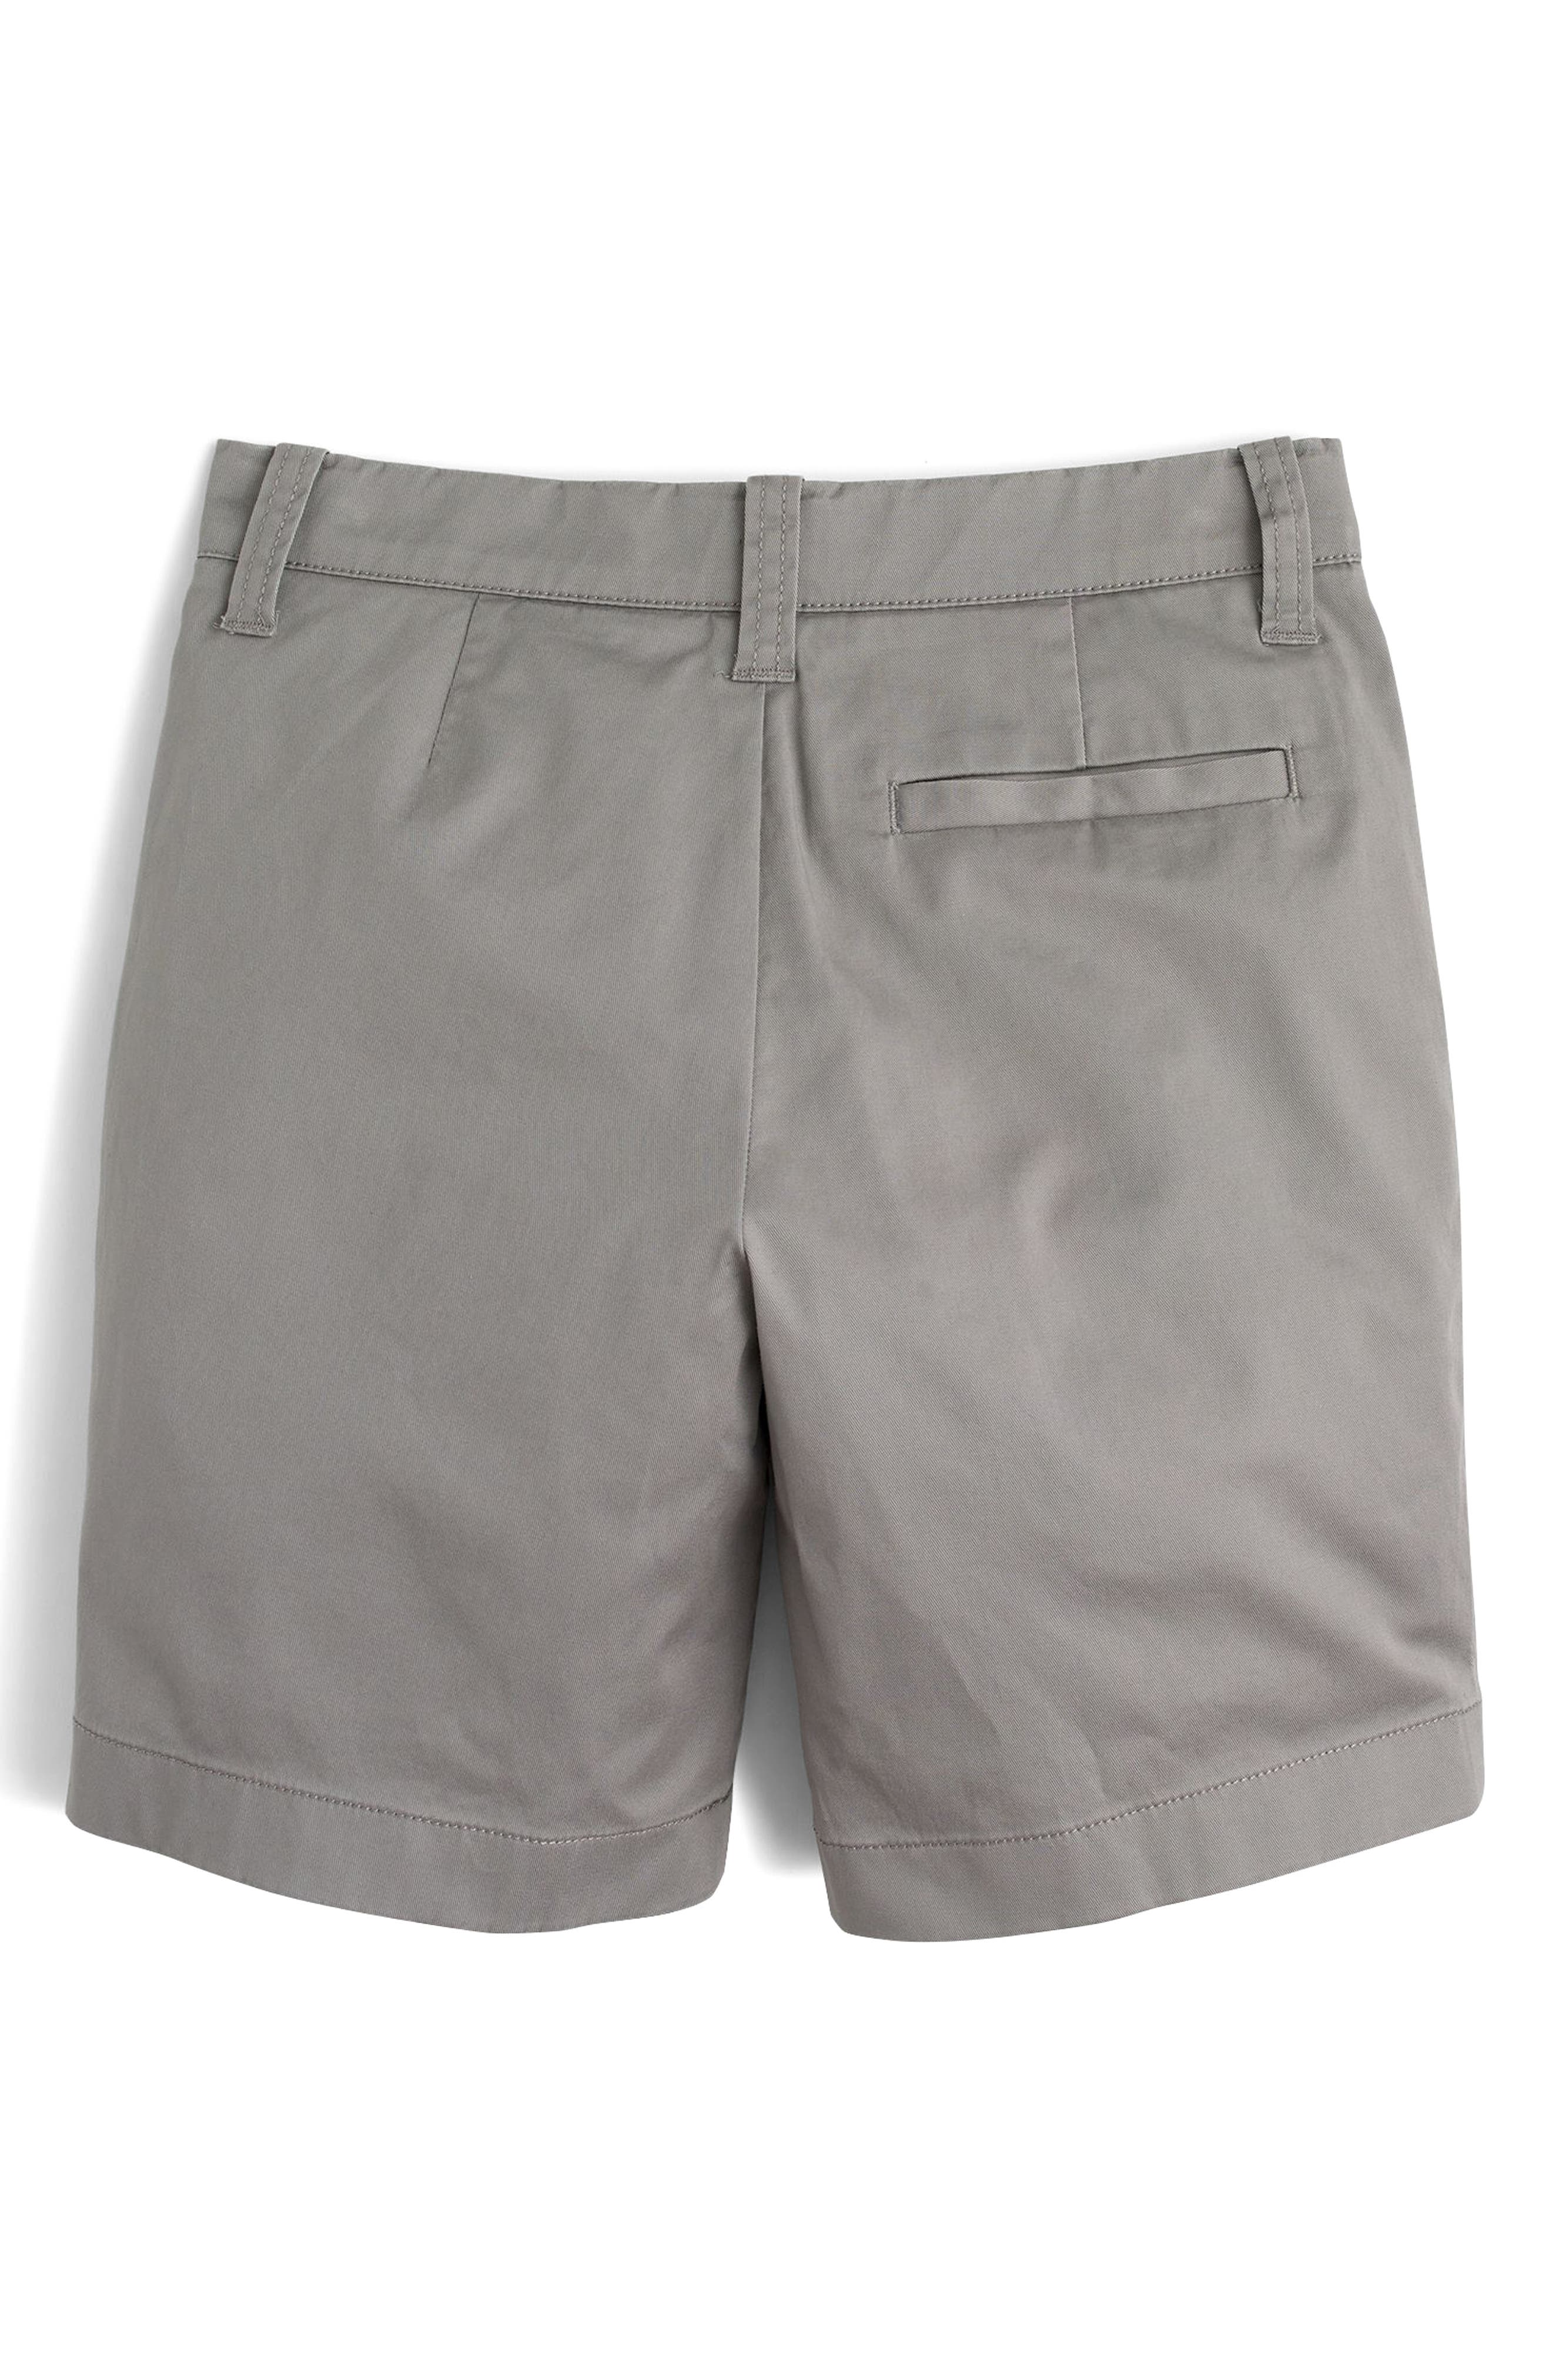 Stanton Chino Shorts,                             Alternate thumbnail 2, color,                             020